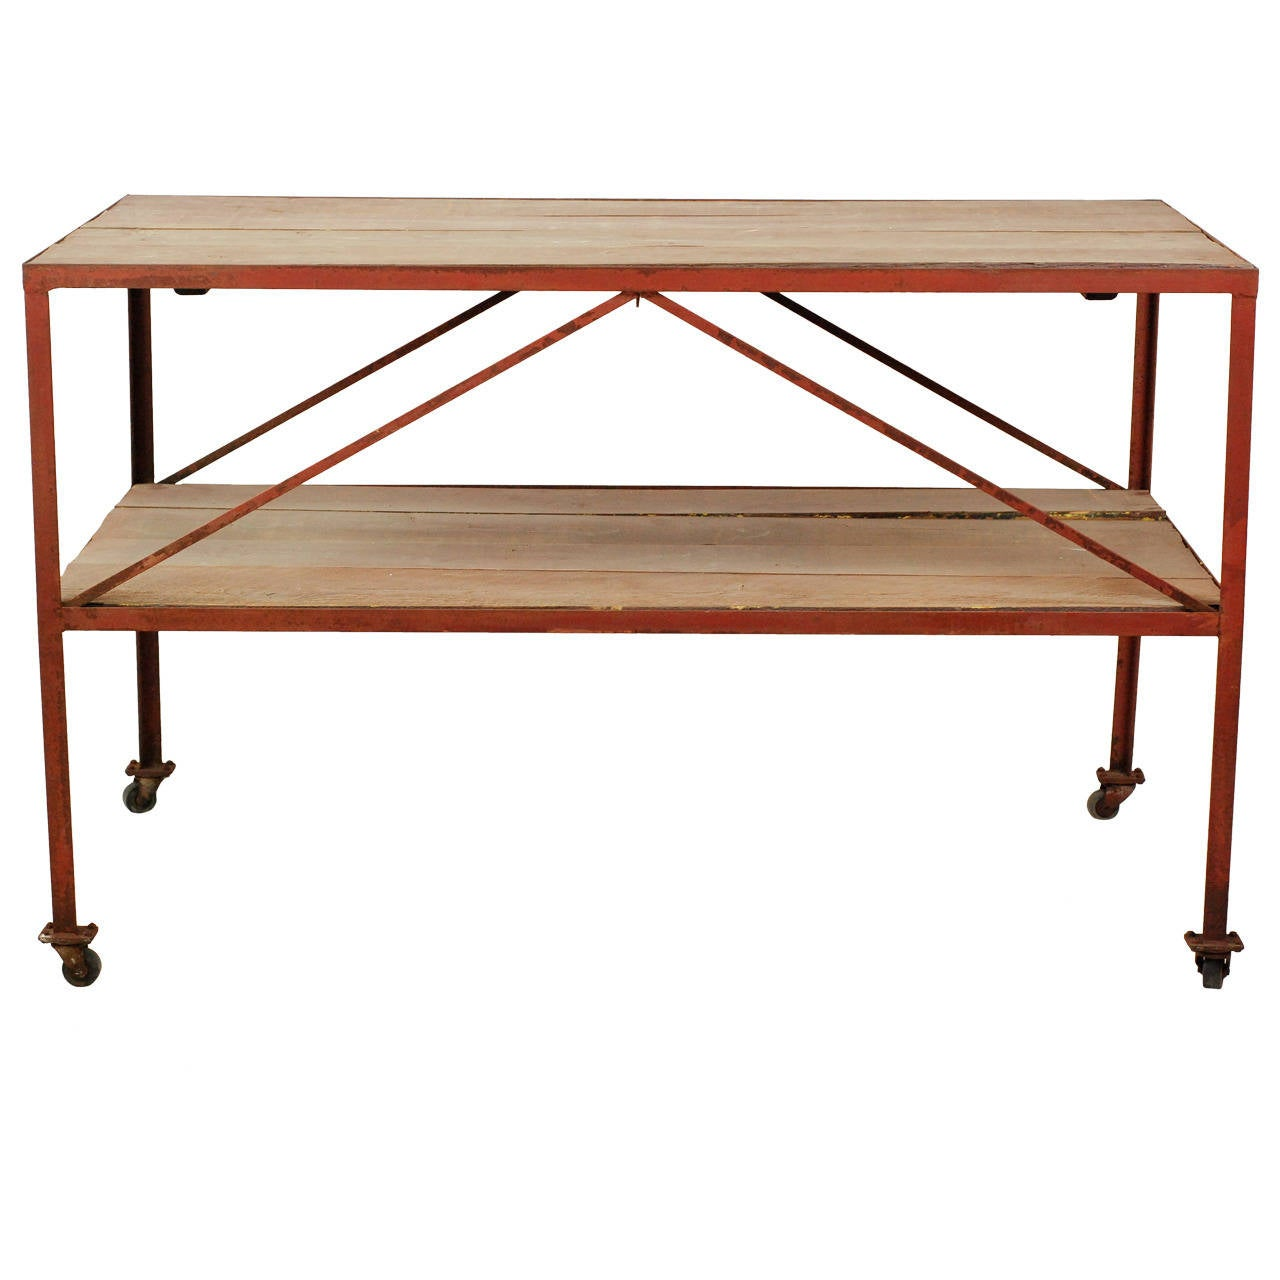 Two Tier Iron Work Table At 1stdibs